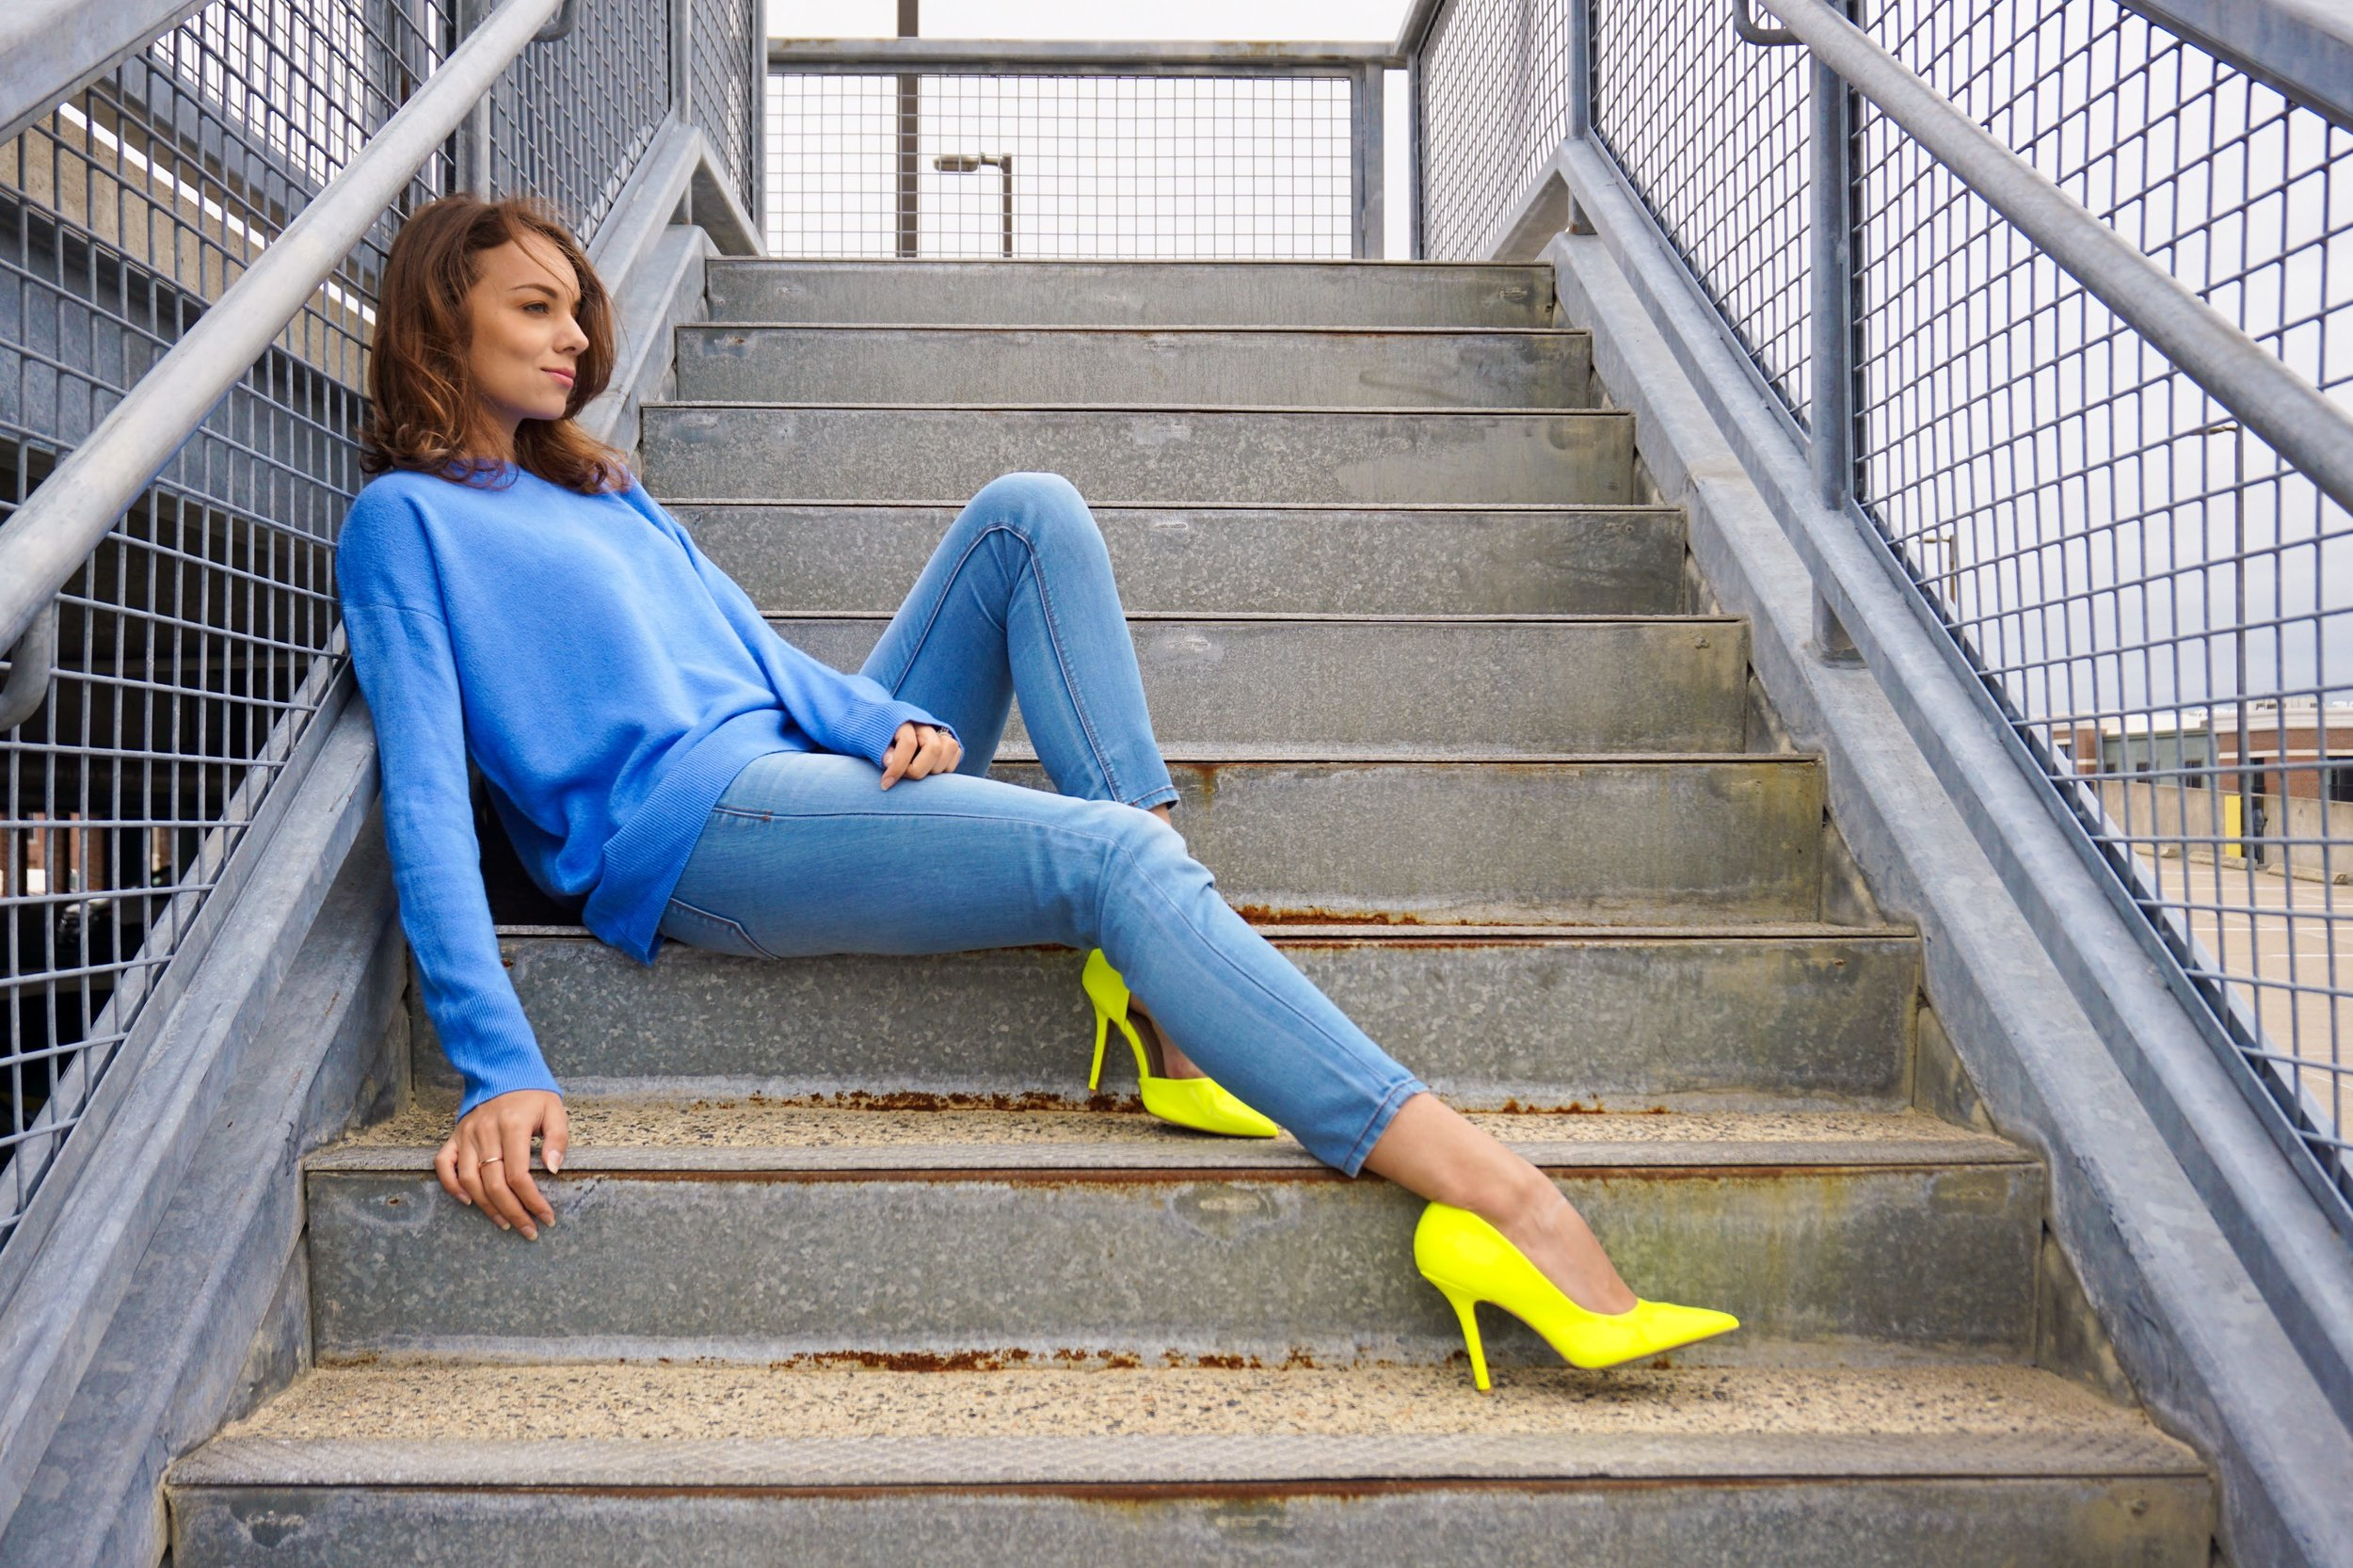 A fashion blogger sitting on the steps looking away from the camera, wearing a blue sweater, light blue jeans, and neon heels.